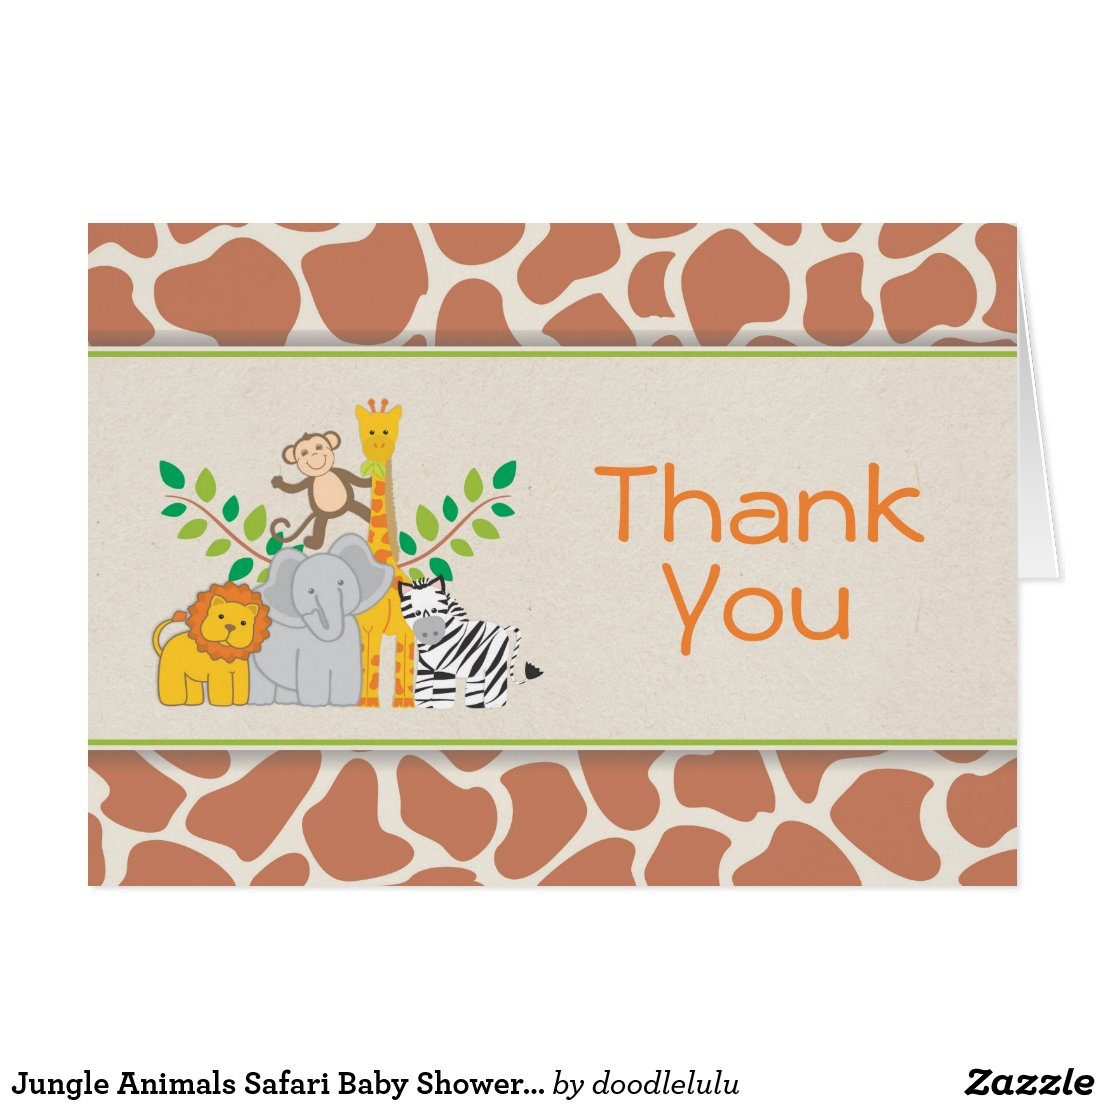 Jungle Animals Safari Baby Shower Thank You Card